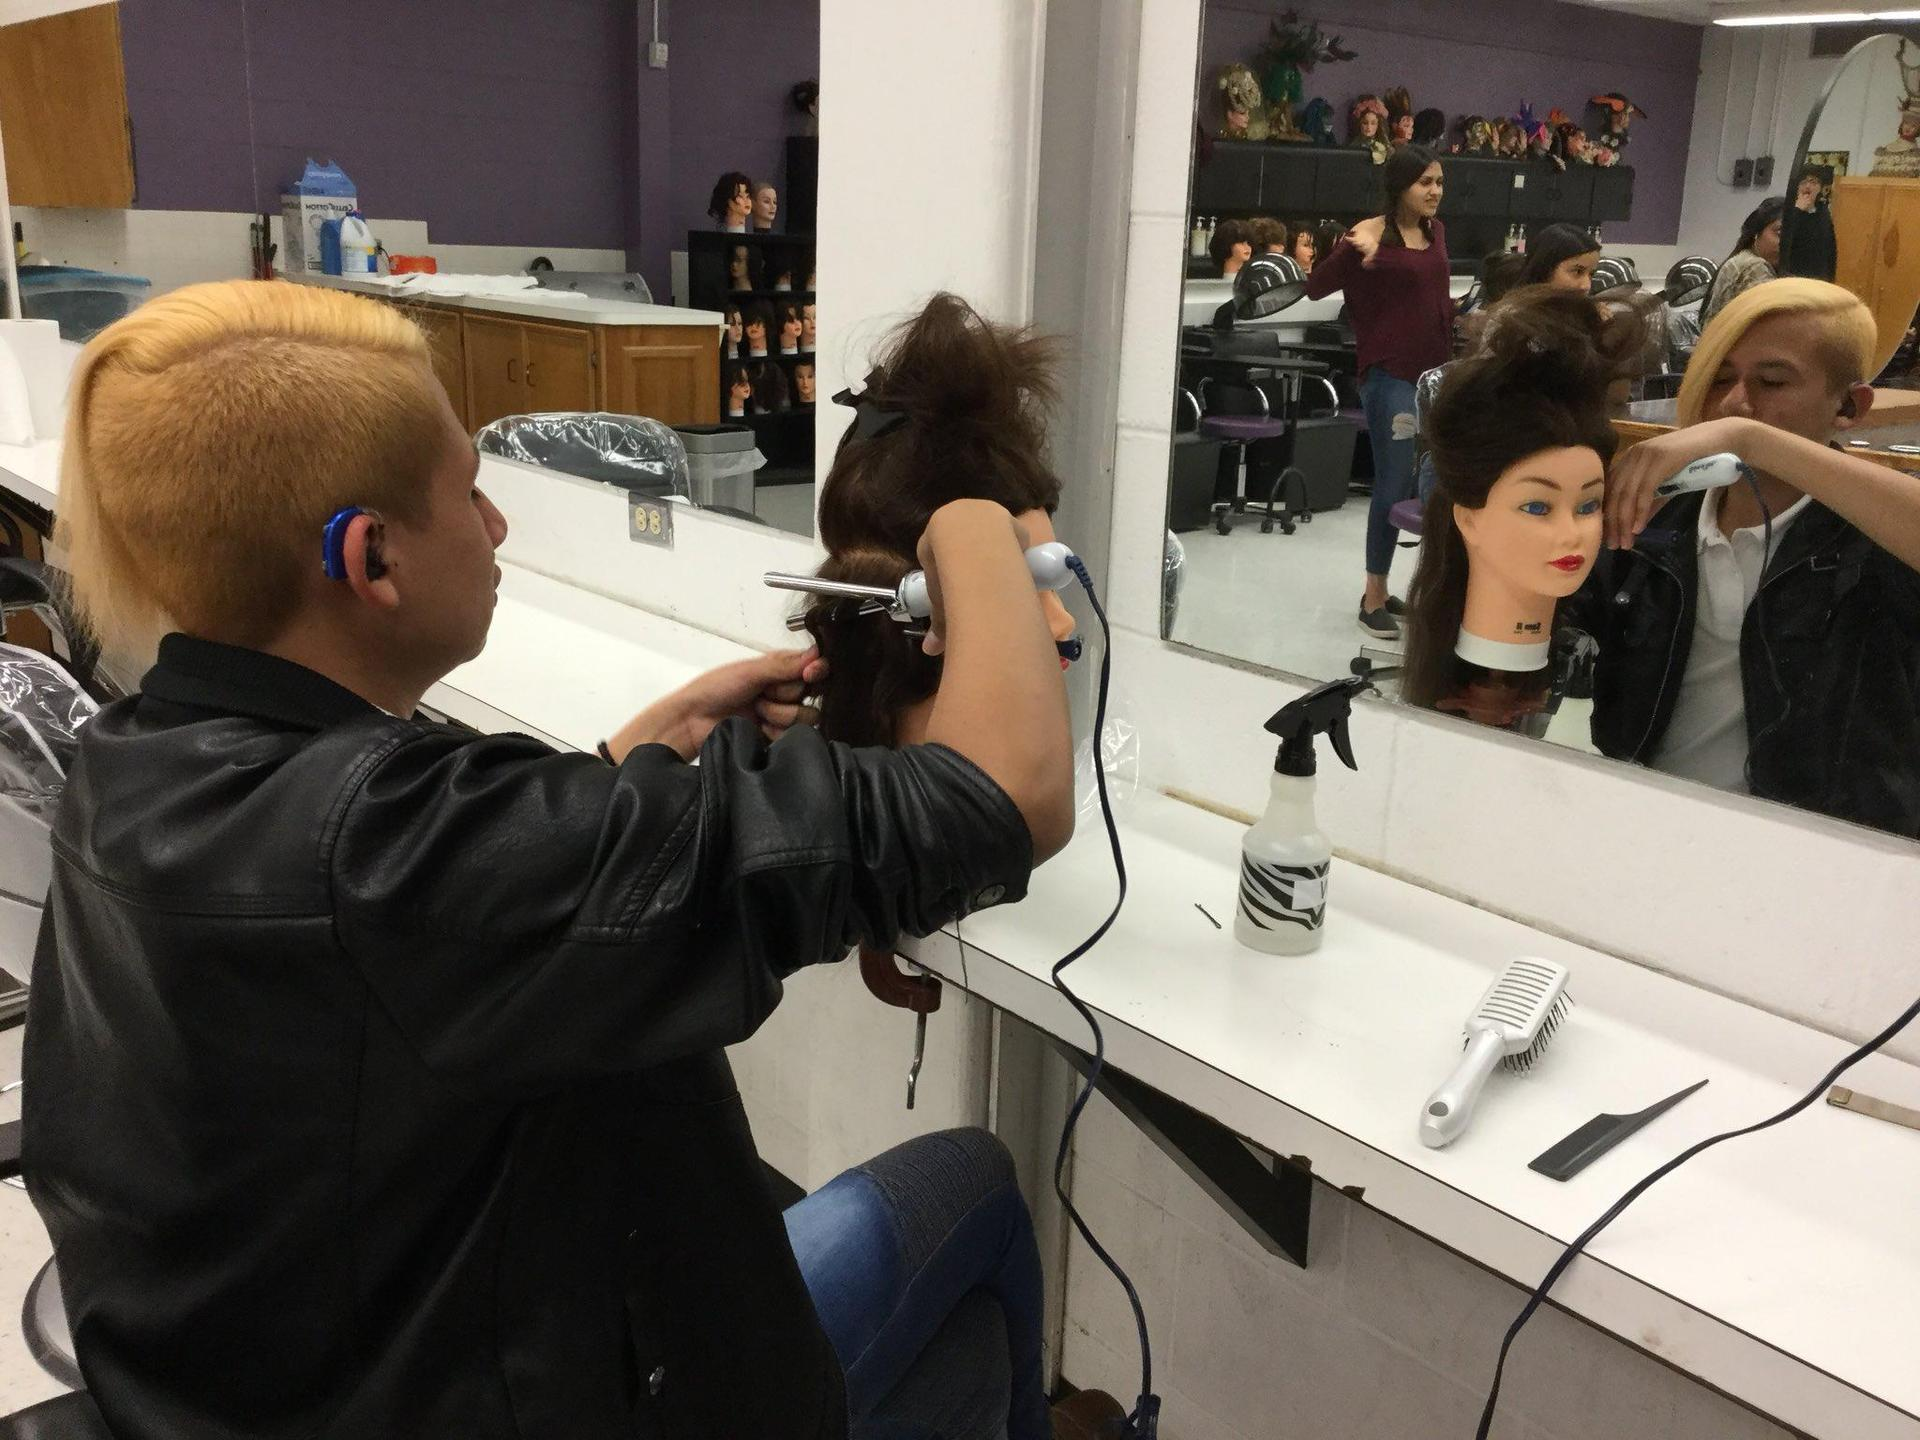 student styling a mannequin's hair